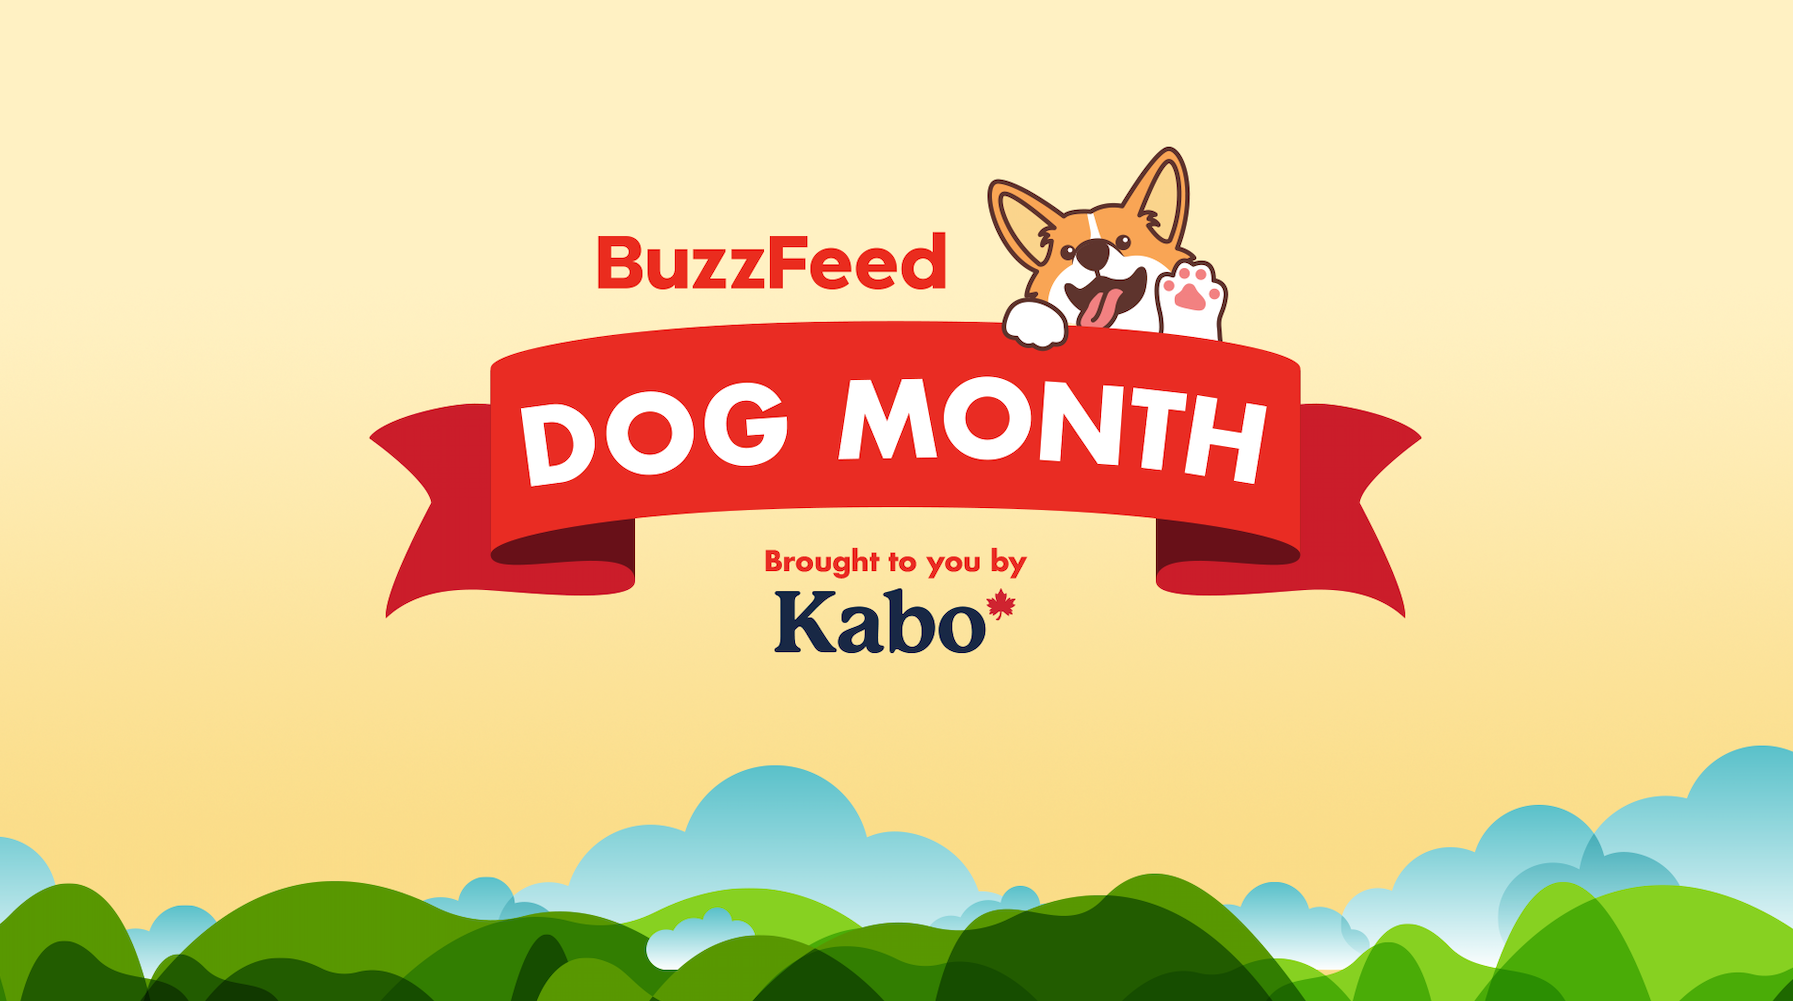 BuzzFeed Dog Month Brought to you by Kabo